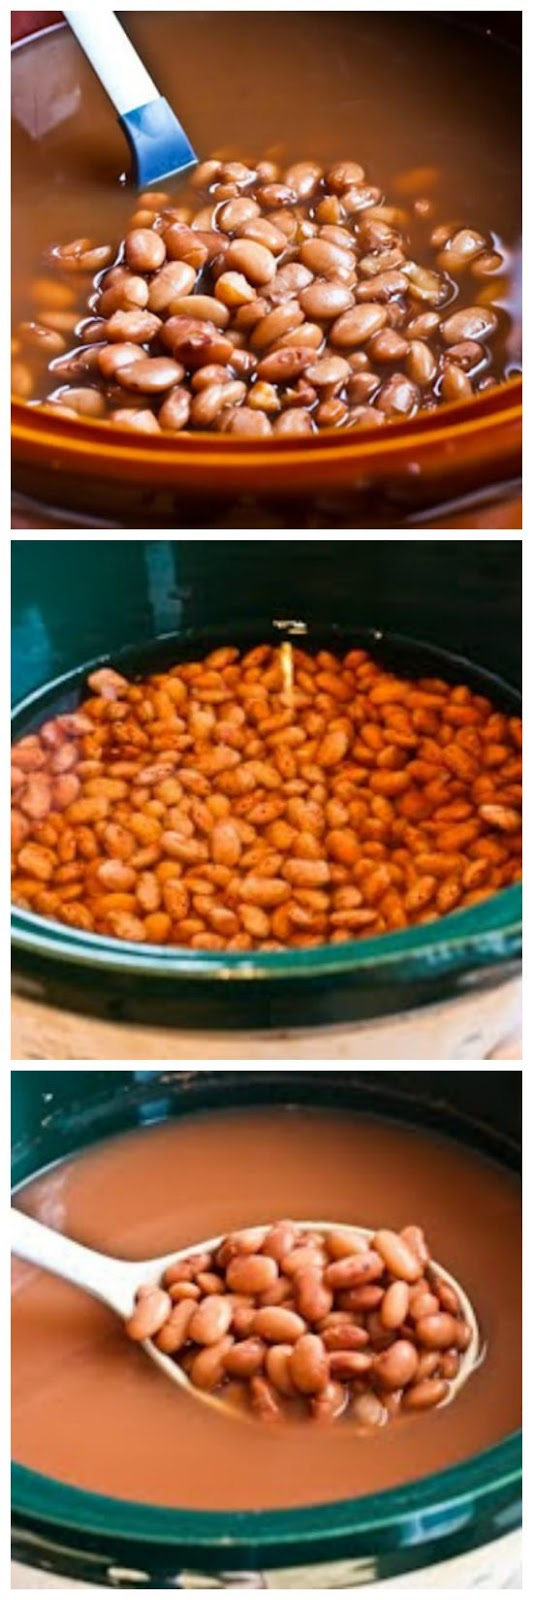 How to Cook Dried Beans in a Slow Cooker from Kalyn's Kitchen [via Slow Cooker from Scratch]